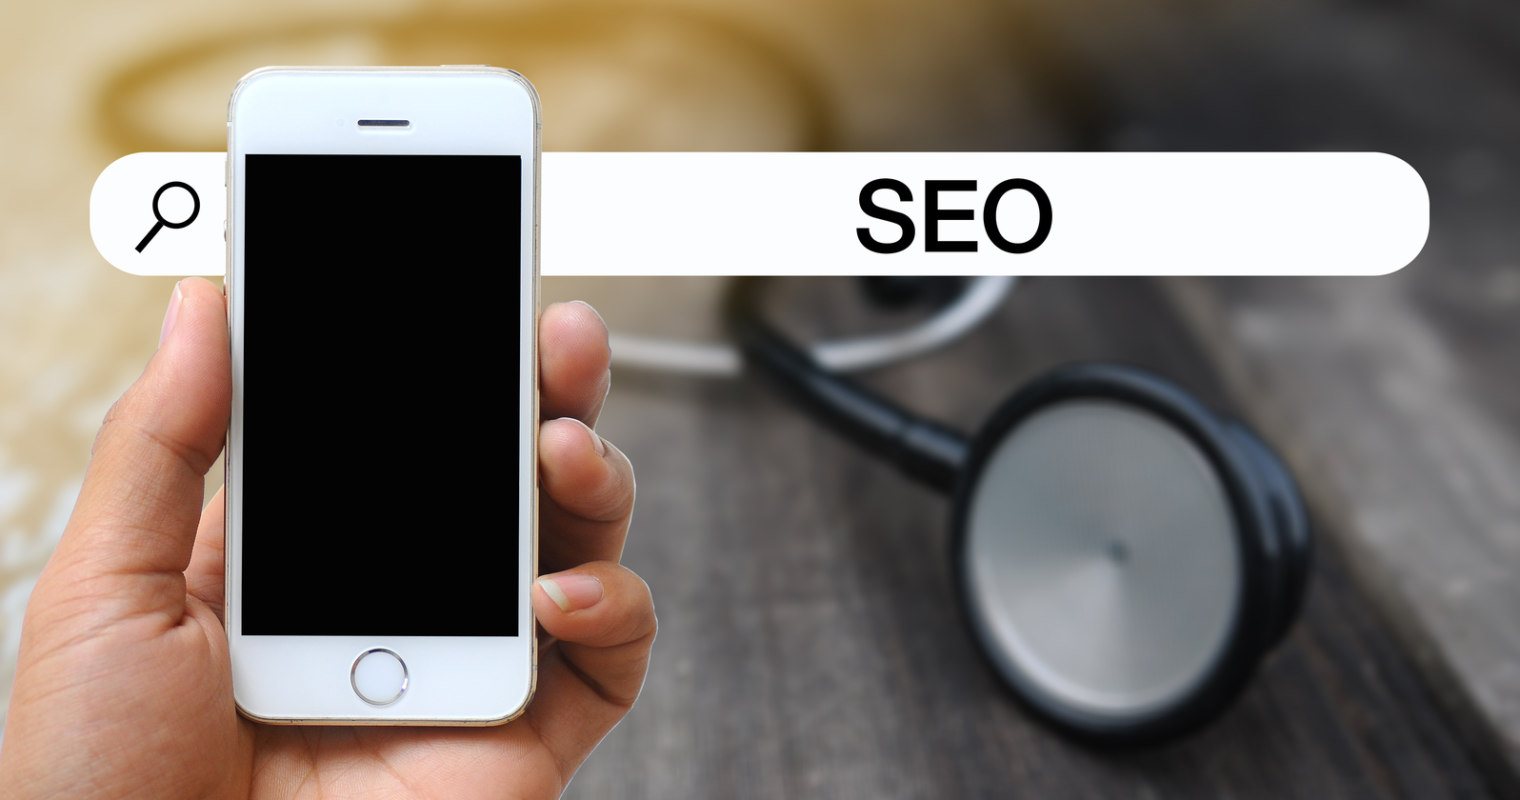 Healthcare SEO Fundamentals to Grow Your Medical Practice